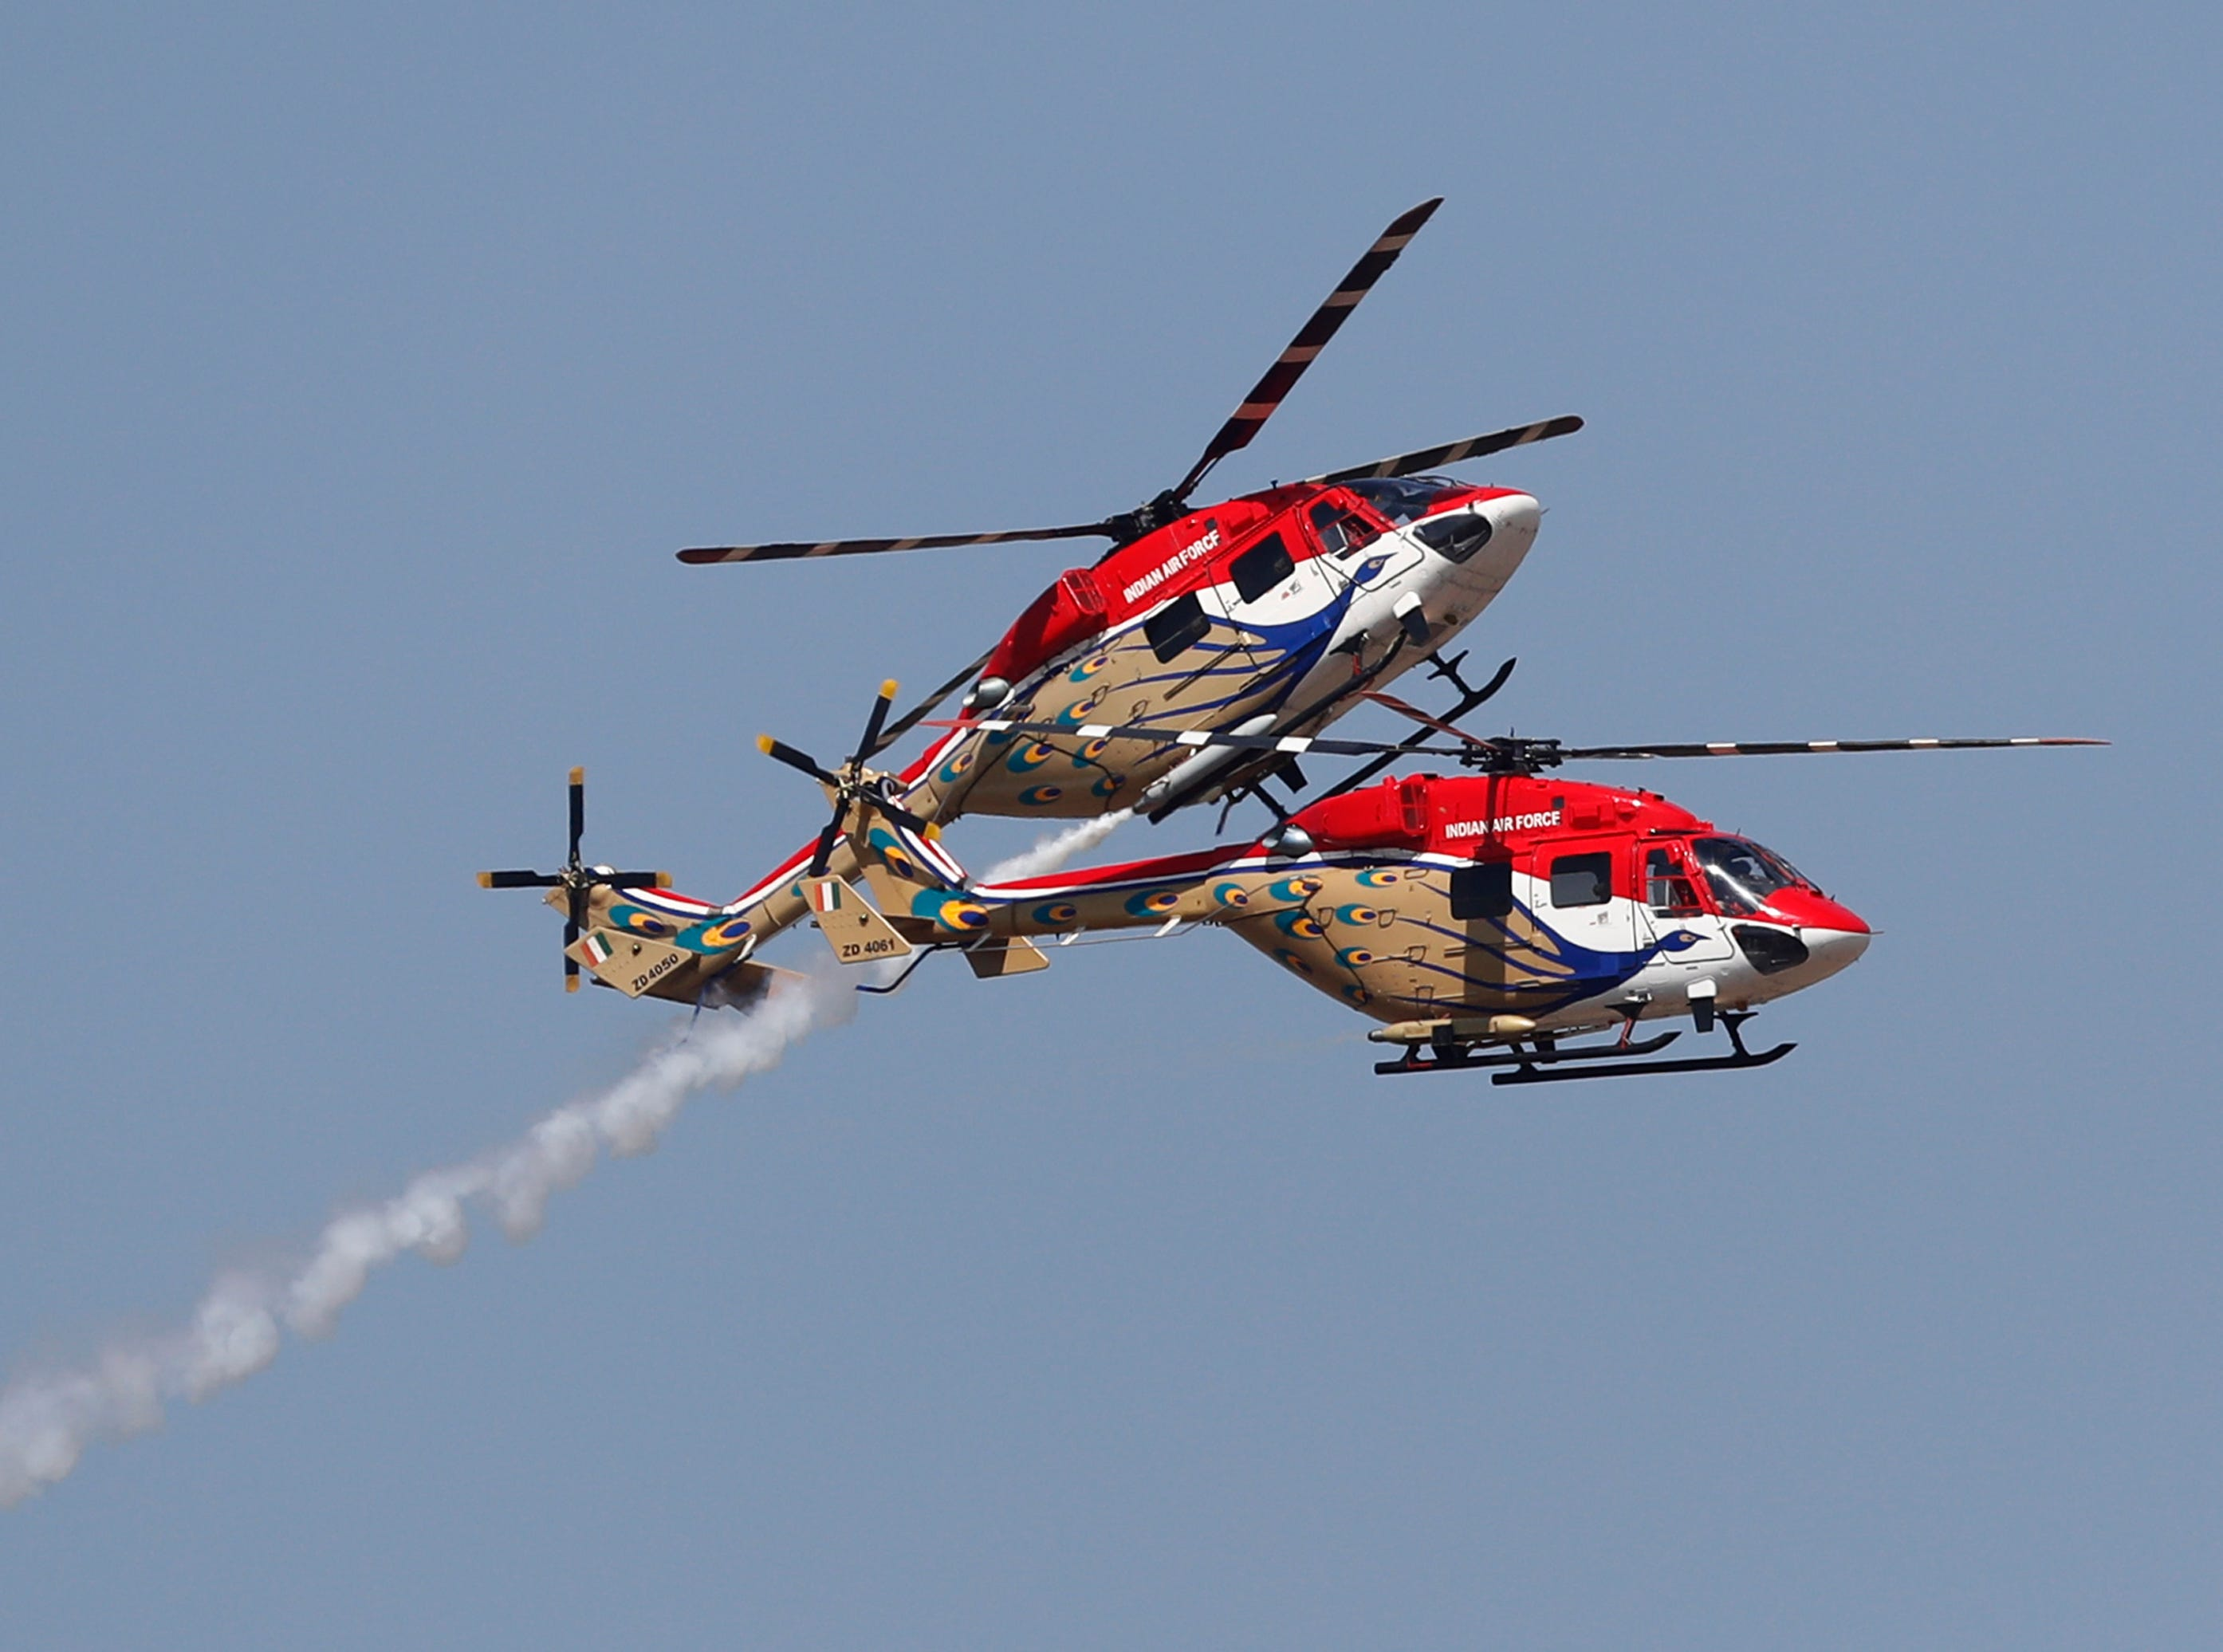 Indigenously manufactured Indian Air Force Dhruv helicopters perform aerobatic maneuvers ahead of Aero India 2019 at Yelahanka air base in Bangalore, India, Monday, Feb. 18, 2019. Aero India is a biennial event with flying demonstrations by stunt teams and militaries and commercial pavilions where aviation companies display their products and technology.